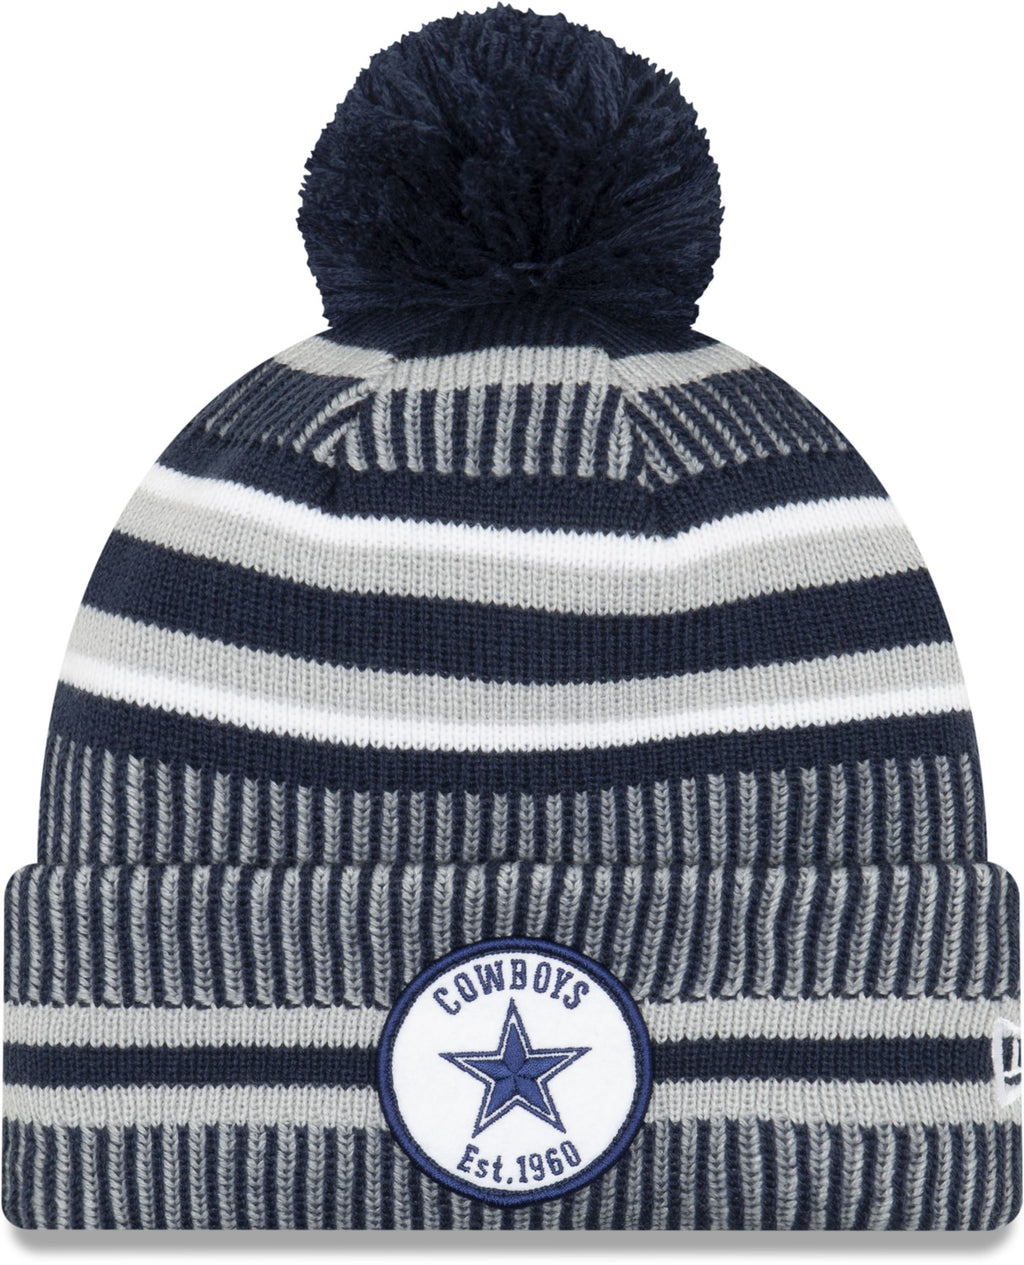 New Era ONF19 Cold Weather Dallas Cowboys Bobble Beanie Hat Navy